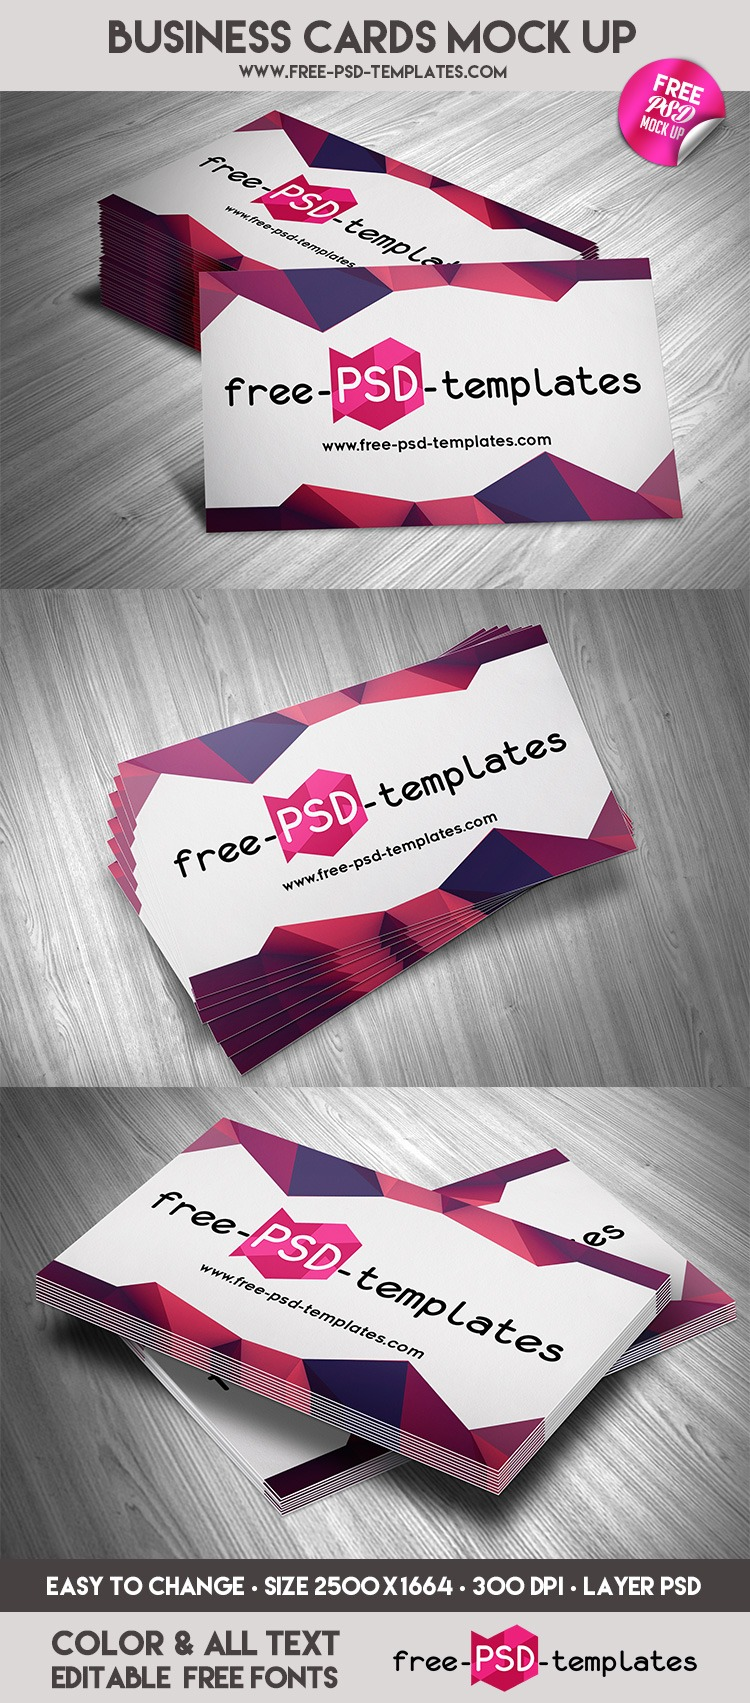 preview_business_cards_mock_up